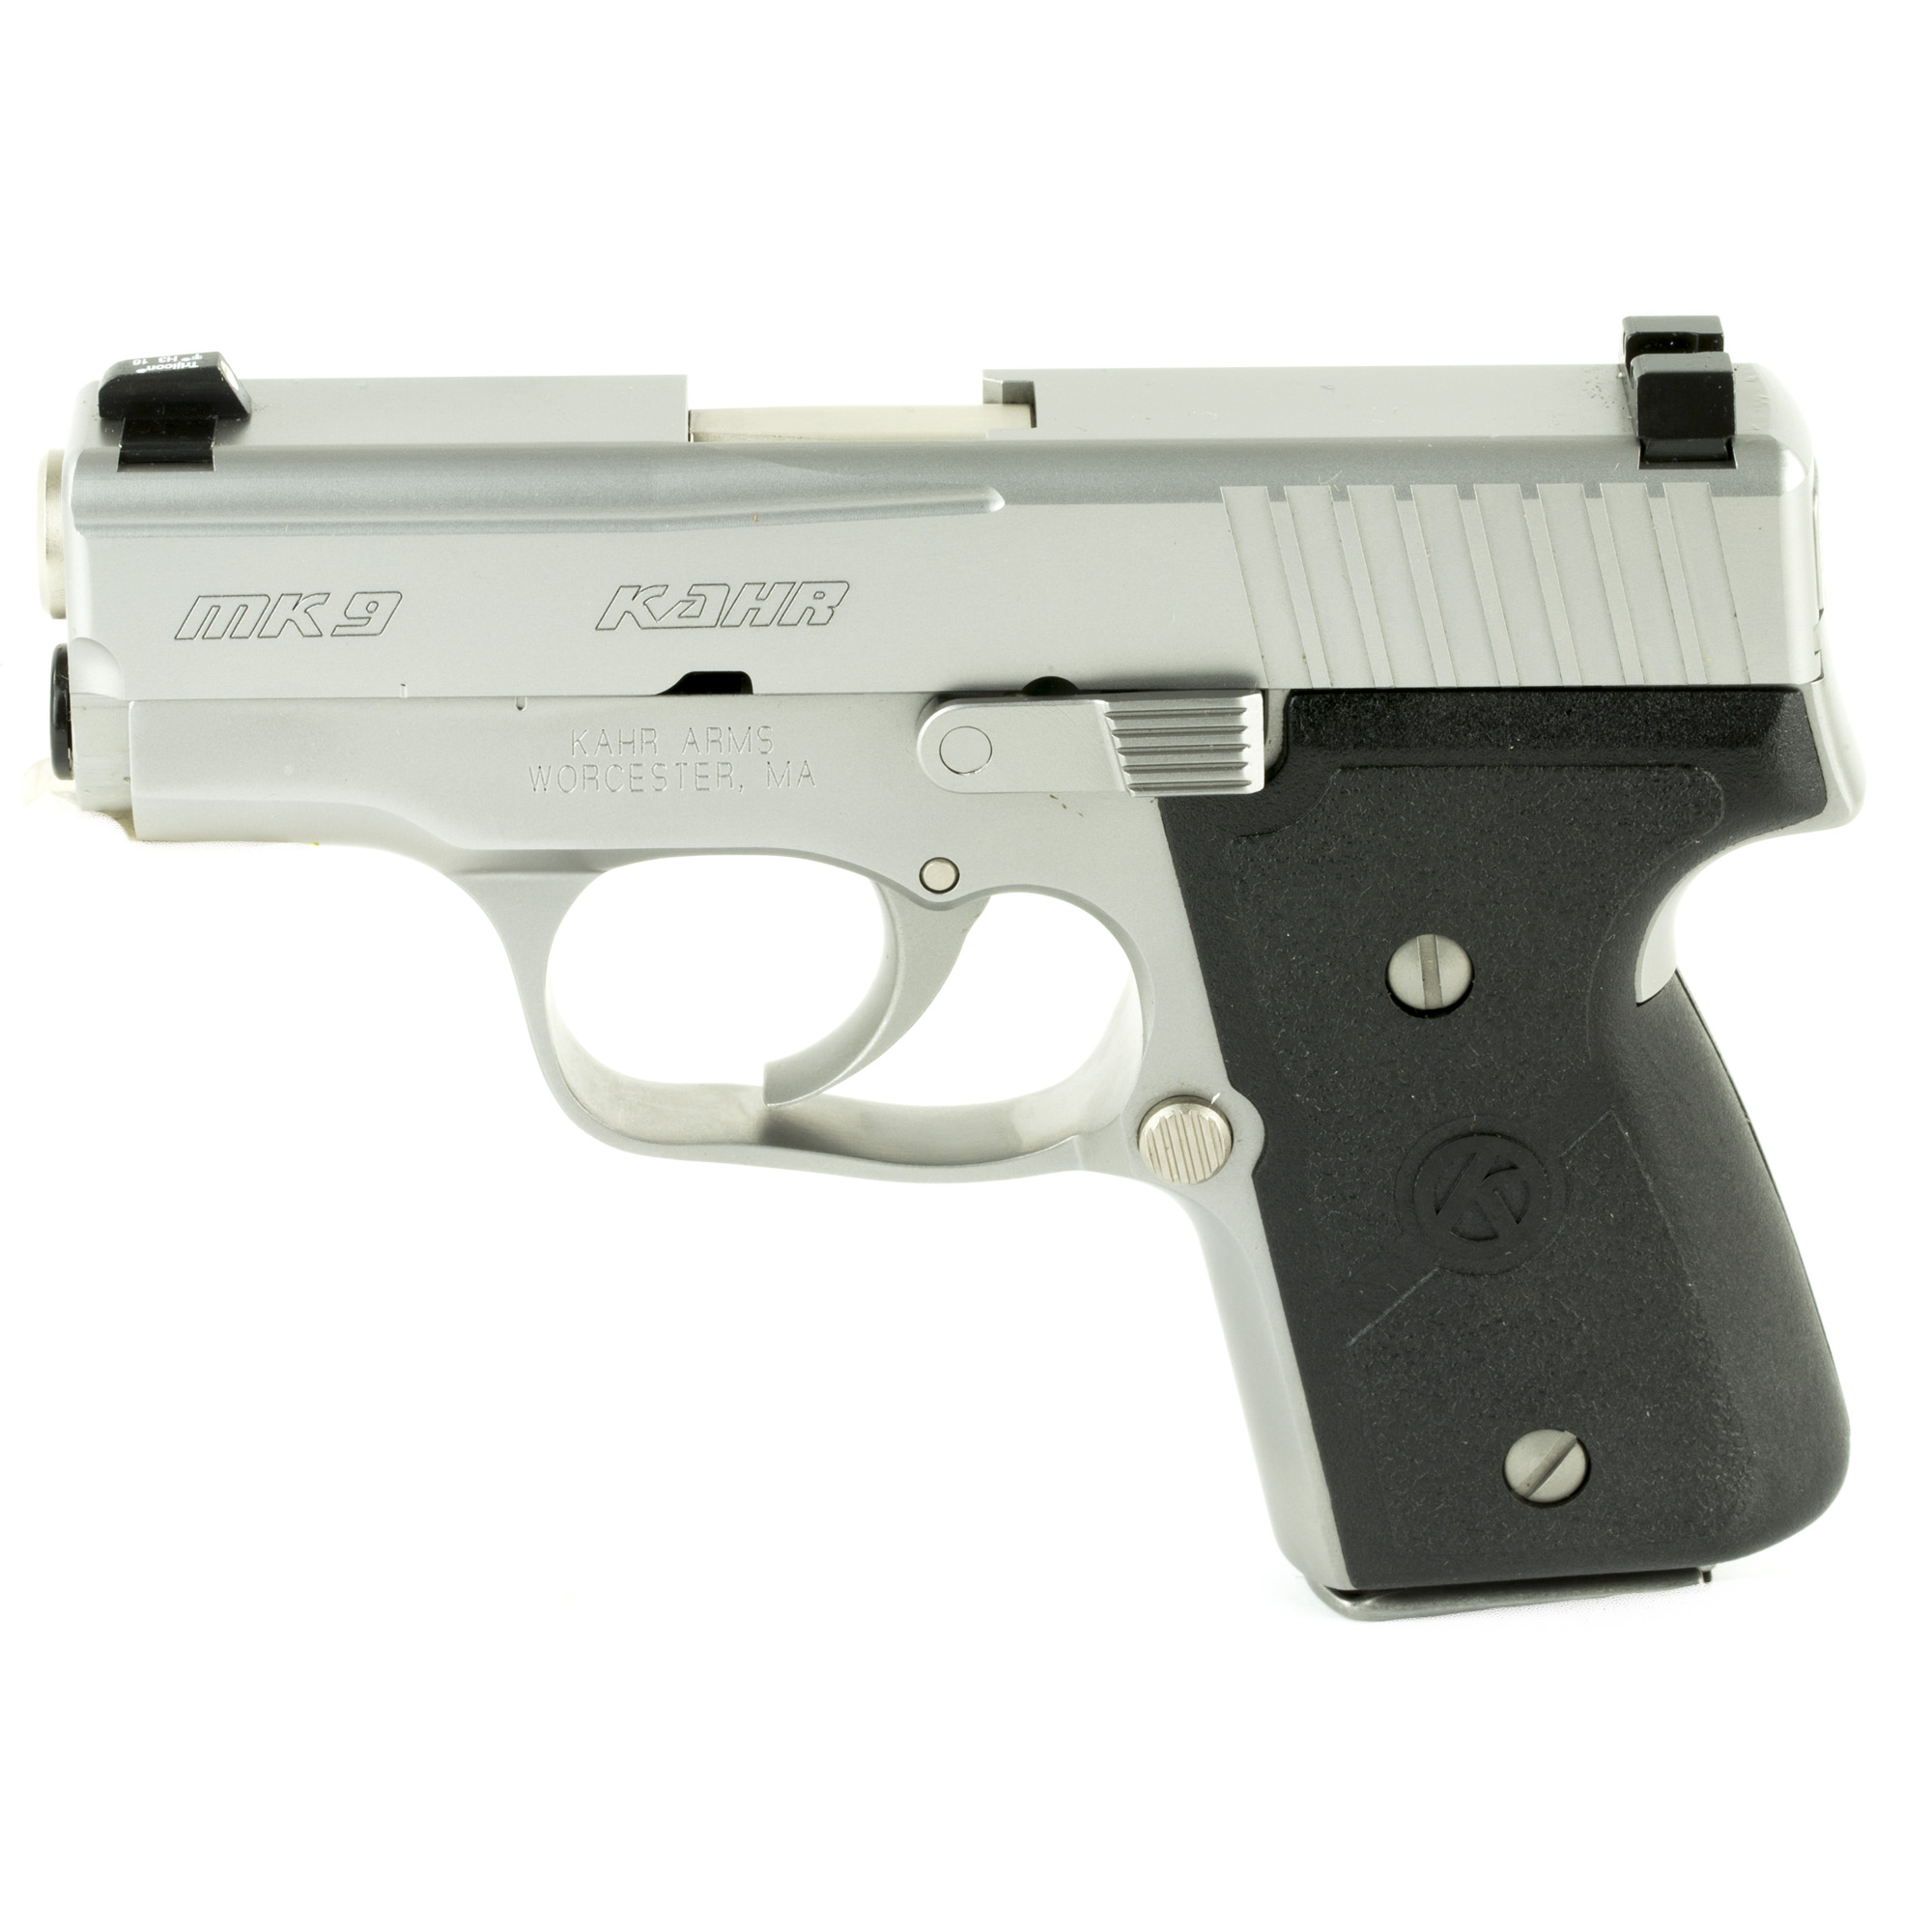 """Kahr Arms offers the best concealed carry/back-up gun on the market by offering high quality and total reliability in a lightweight package. Featuring a match-grade polygonal-rifled barrel and silky smooth DAO trigger"""" the MK9 provides excellent balance and accuracy."""